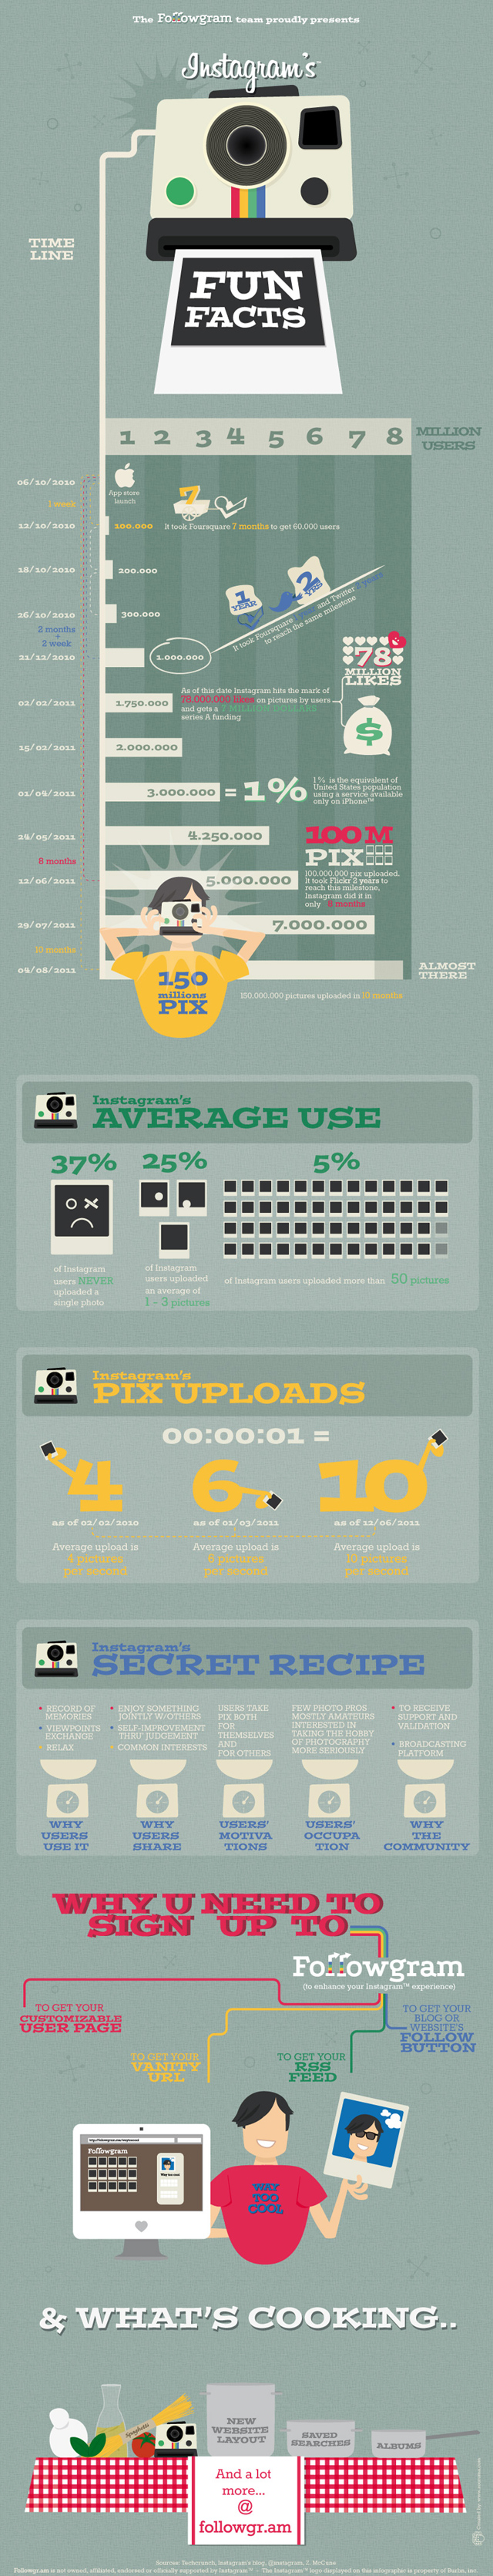 Infographic instagram stats